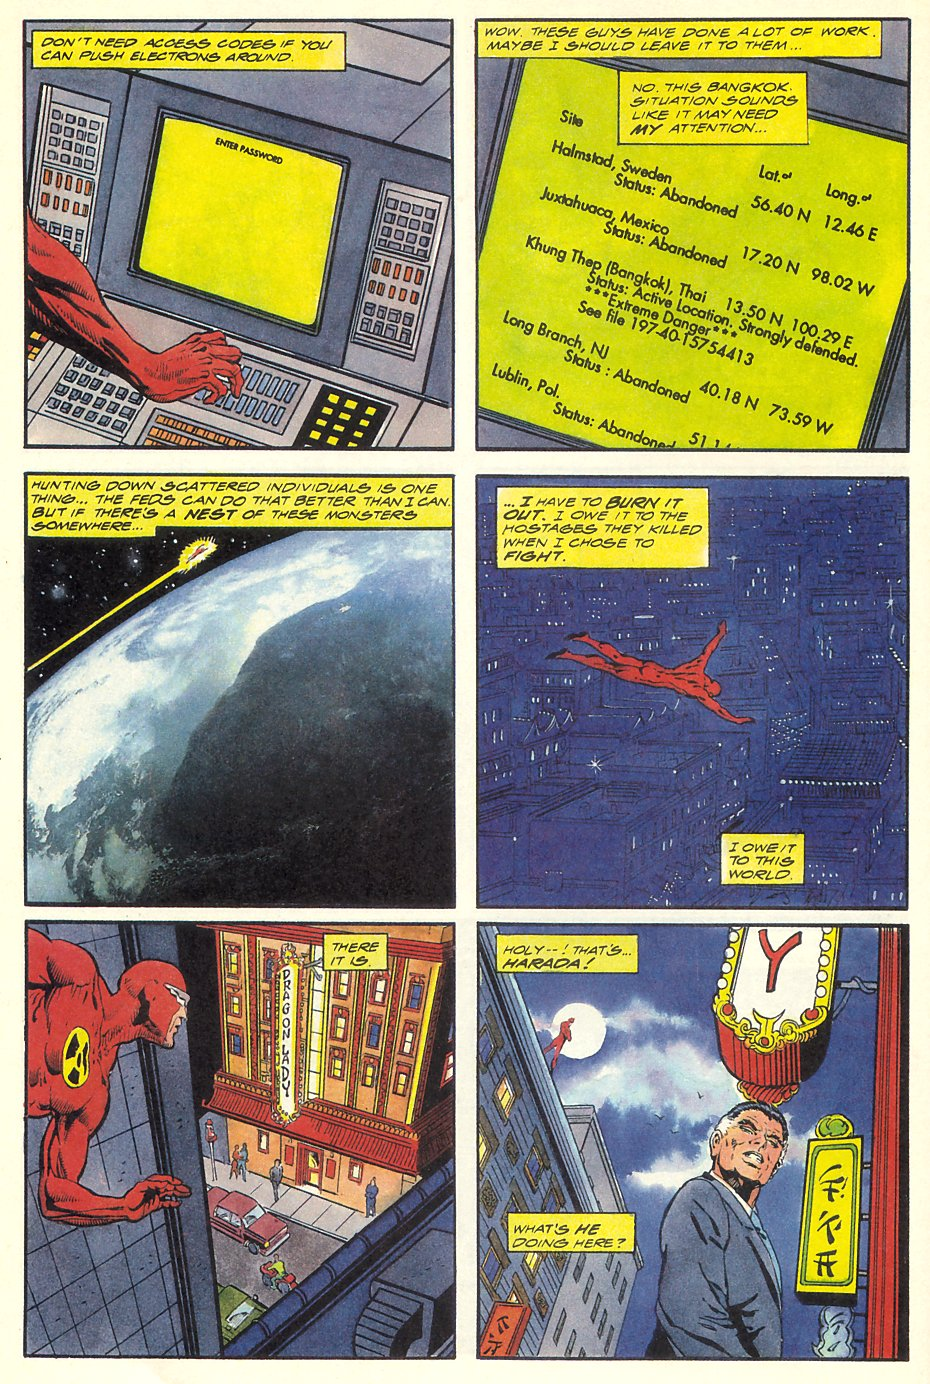 Read online Solar, Man of the Atom comic -  Issue #8 - 16